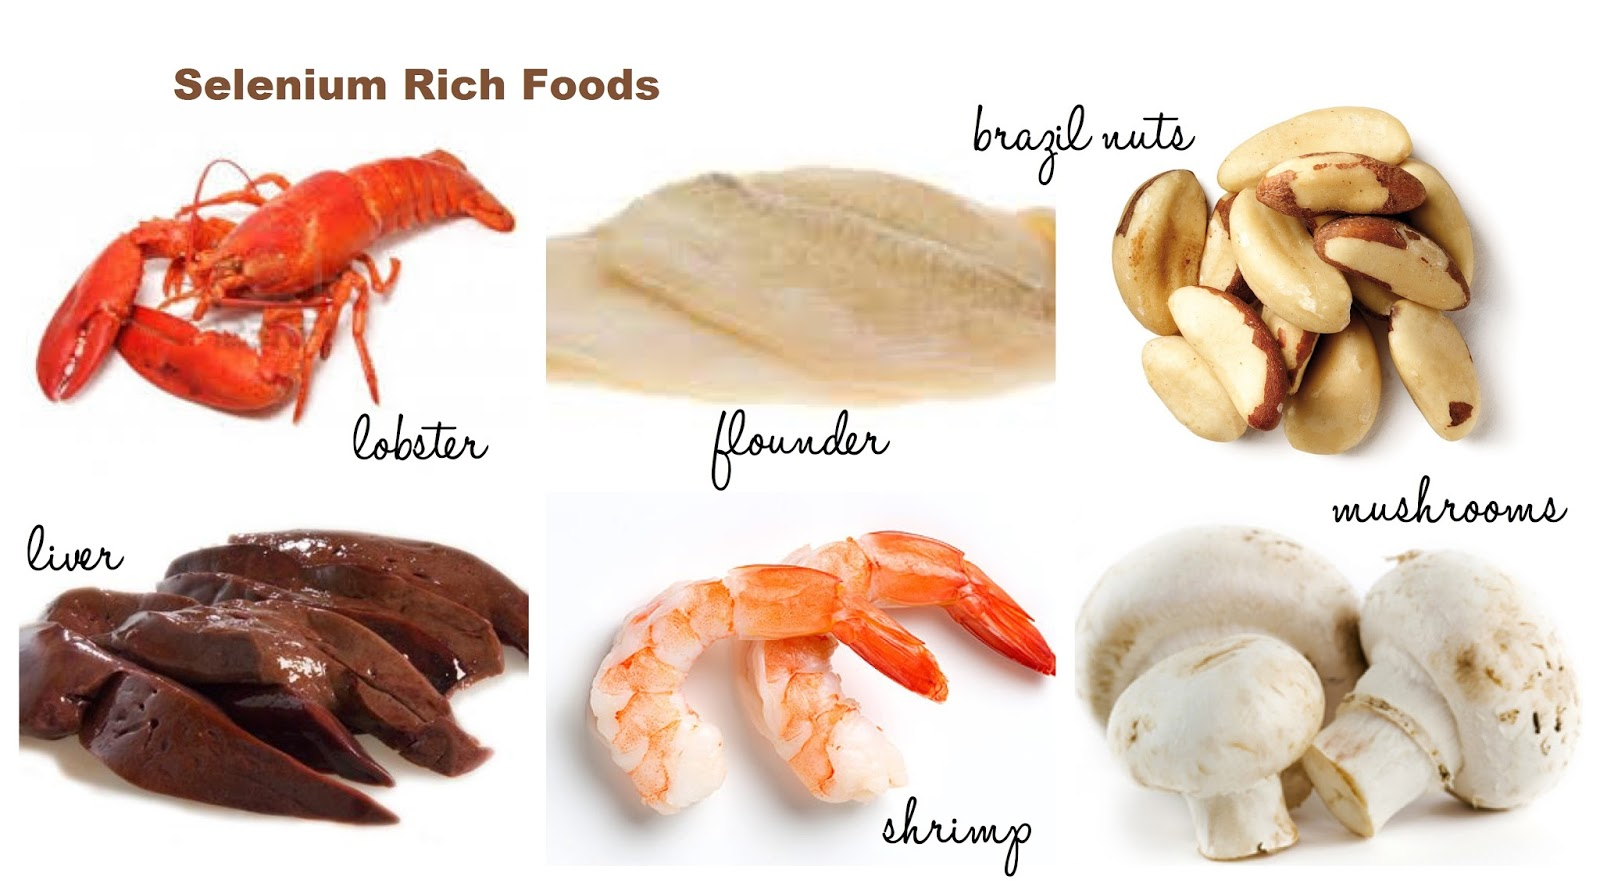 Selenium sources food